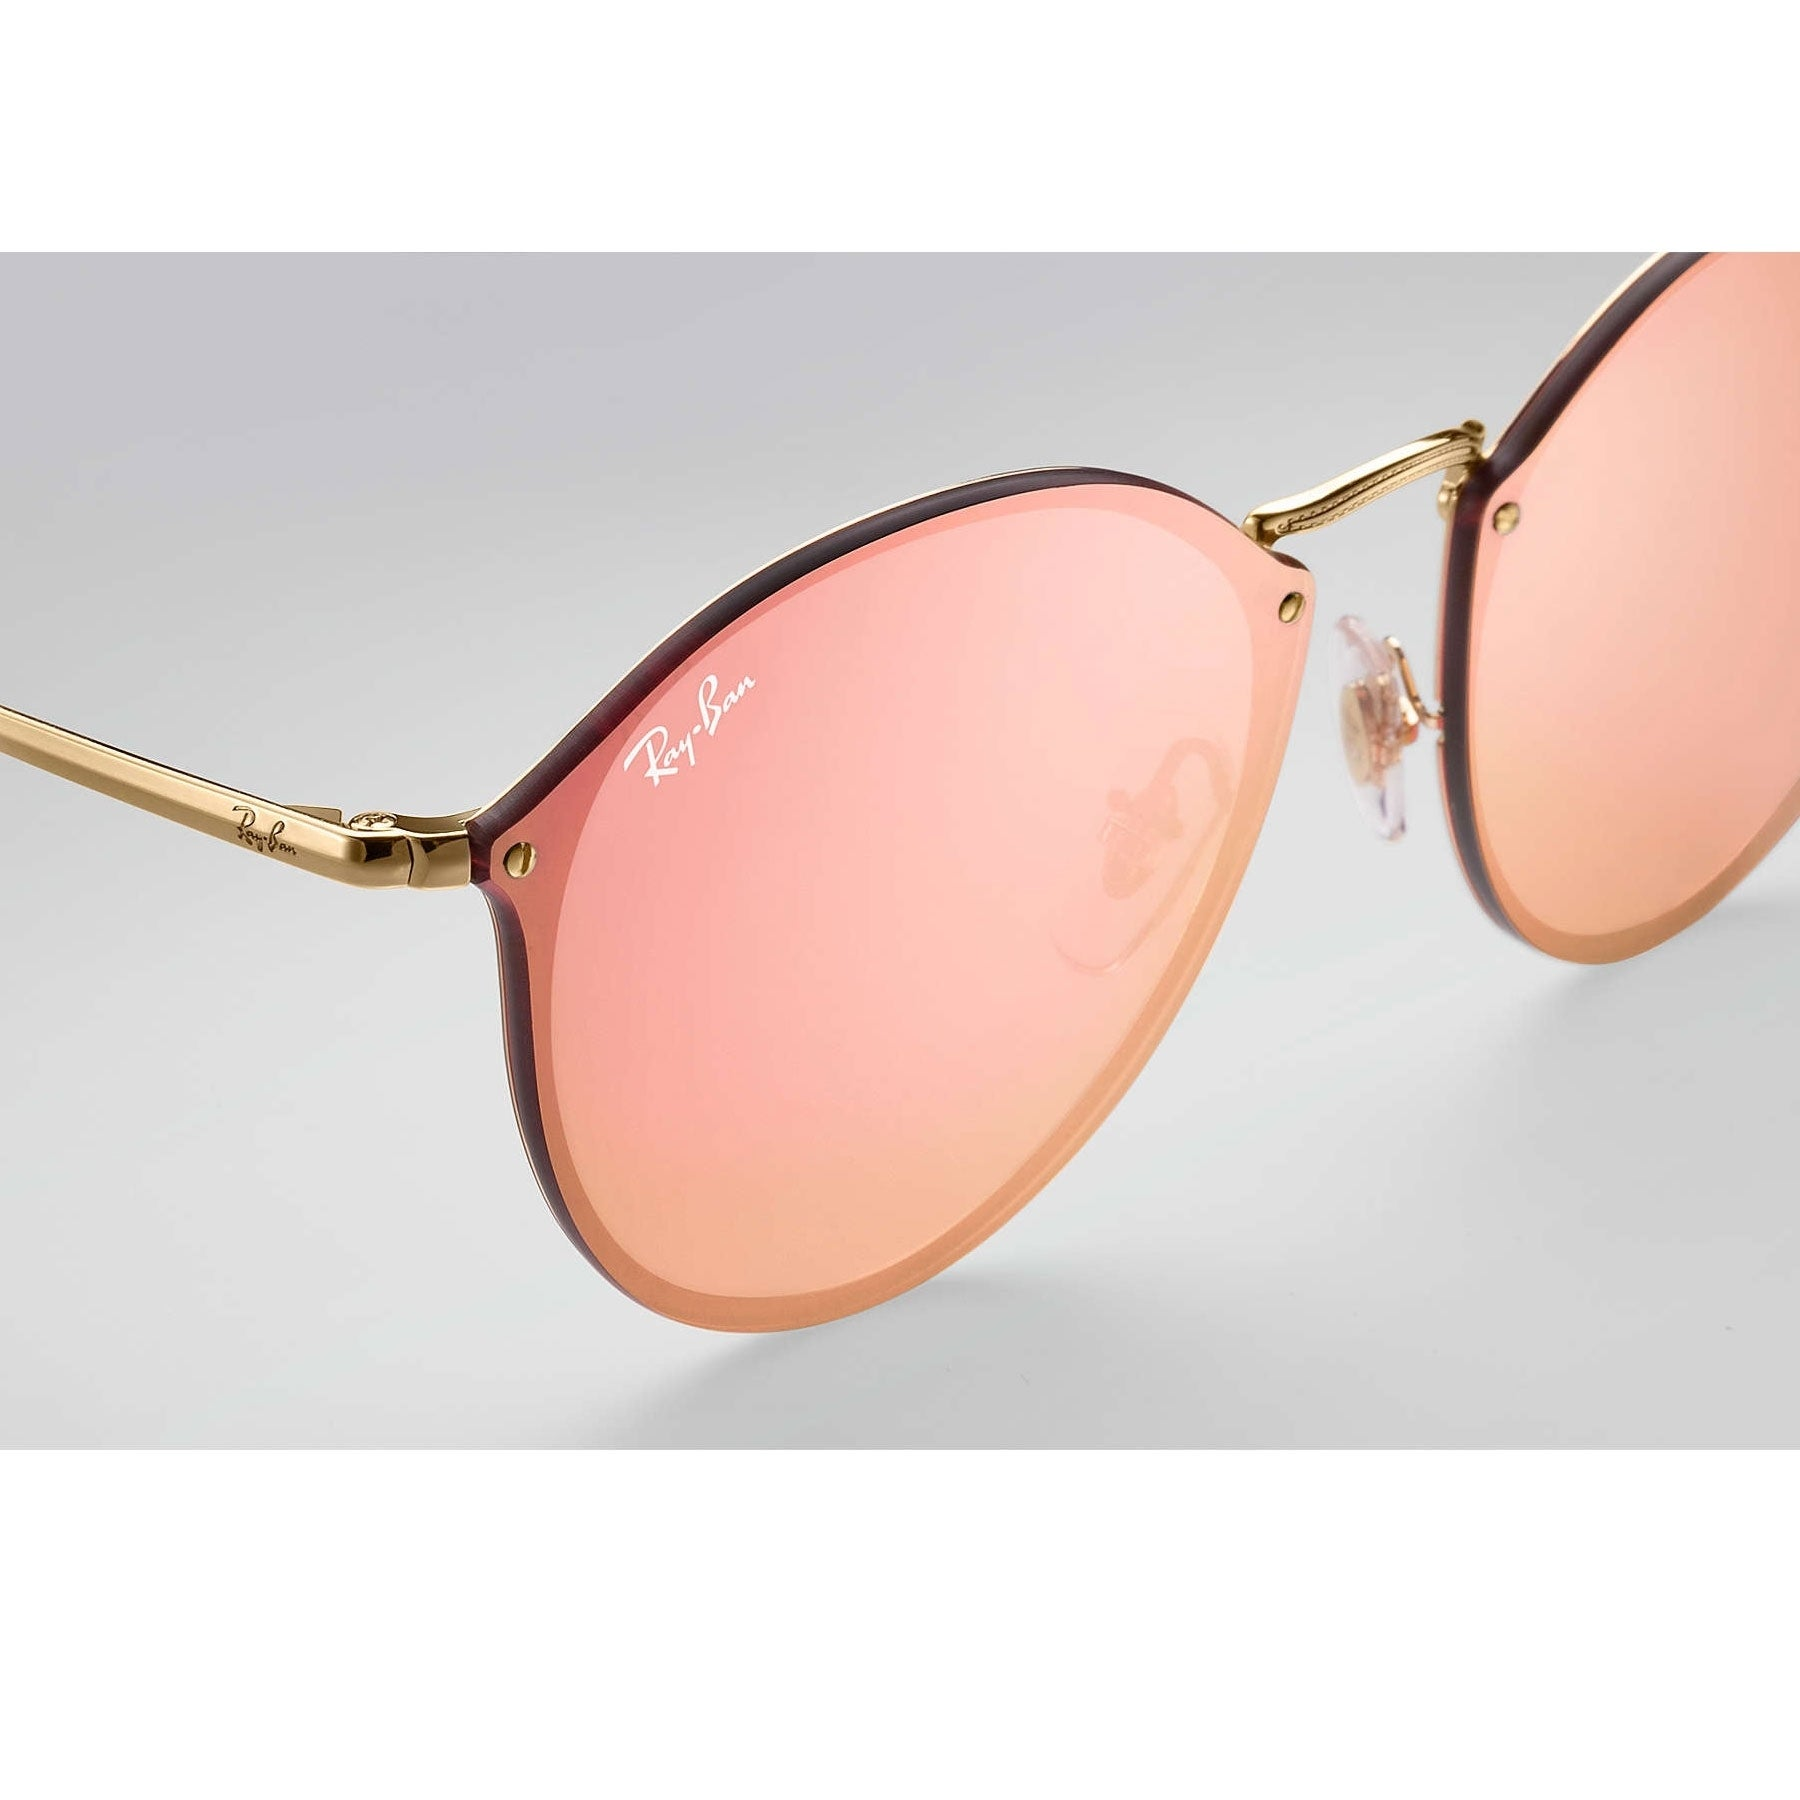 c7611d4a74d Shop Ray-Ban RB3574N Blaze Round Sunglasses Gold  Pink Mirror 59mm - Free  Shipping Today - Overstock - 20602396